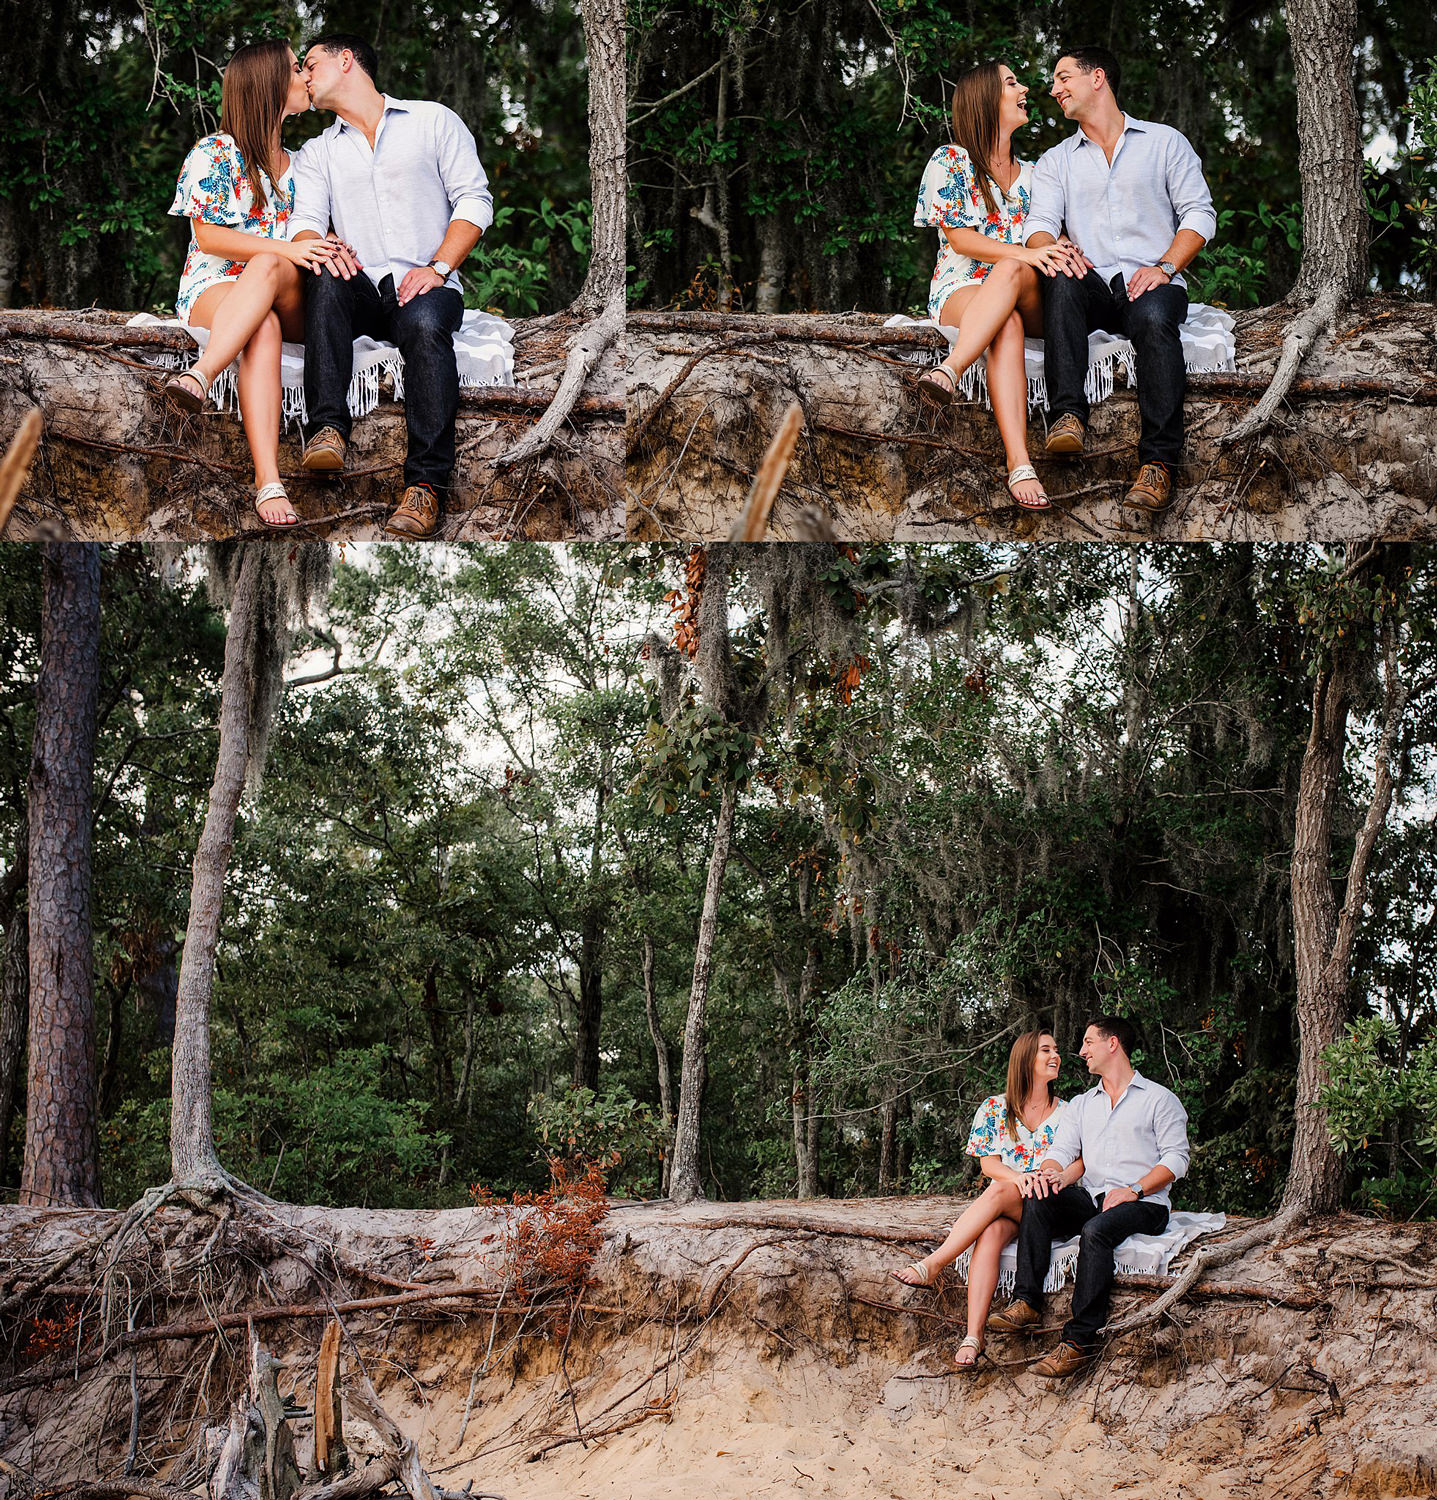 intimate-engagement-session-pictures-first-landing-state-park-va-beach-melissa-bliss-photography.jpg